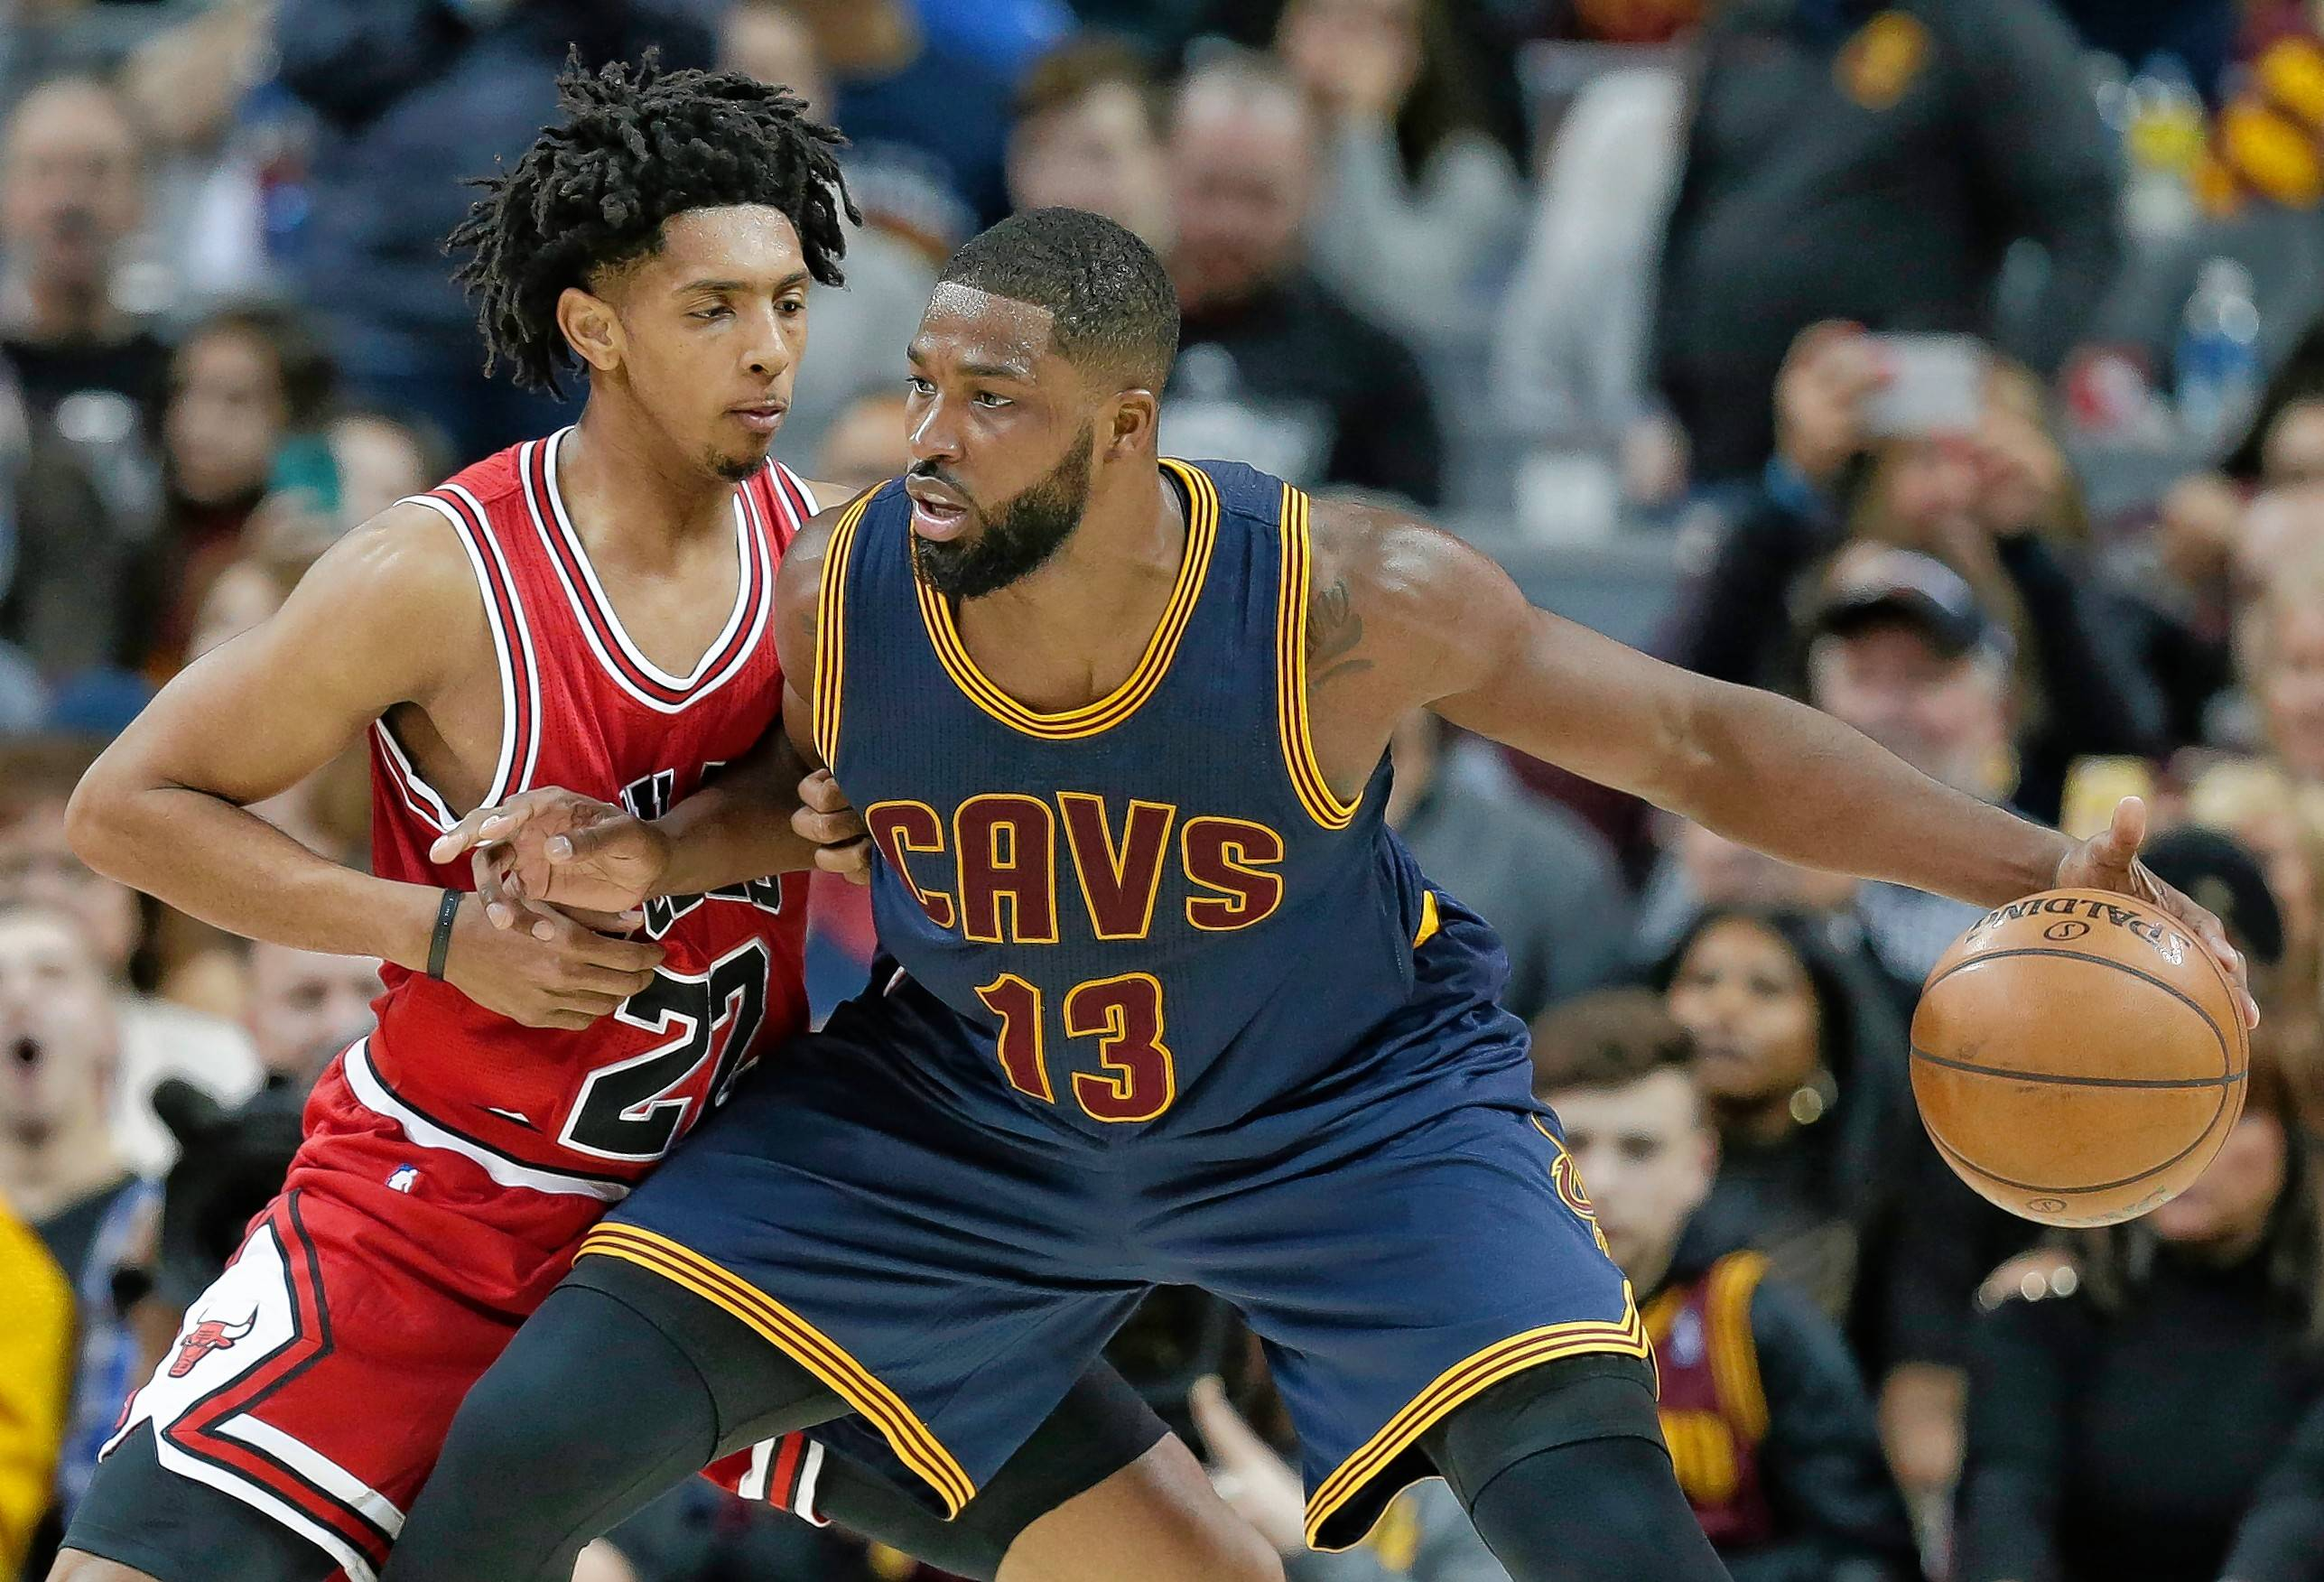 Cleveland Cavaliers' Tristan Thompson, right, drives past Chicago Bulls' Cameron Payne in the first half of an NBA basketball game, Saturday, Feb. 25, 2017, in Cleveland.